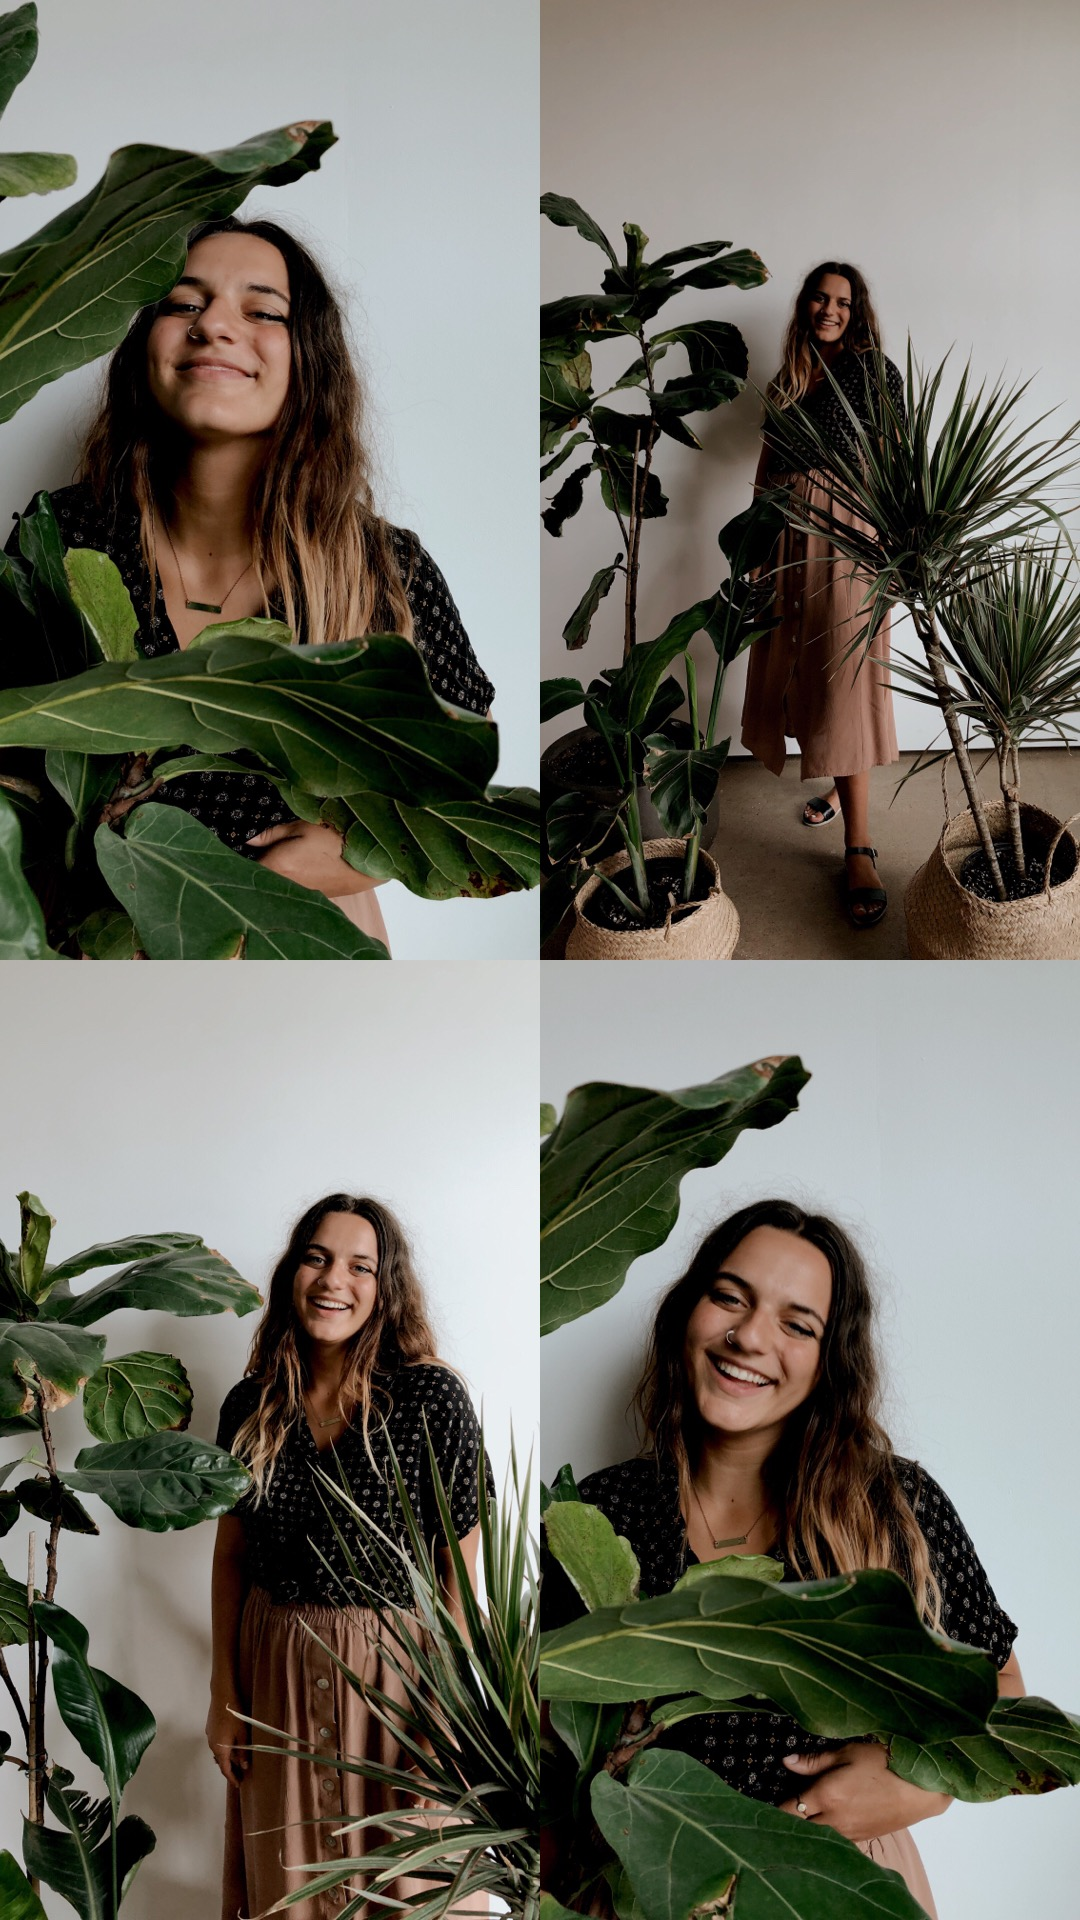 go crazy with the plants! We have so many in Studio I & II, so take advantage. Result? (Feeling like you're in a botanical garden) - tip no.3